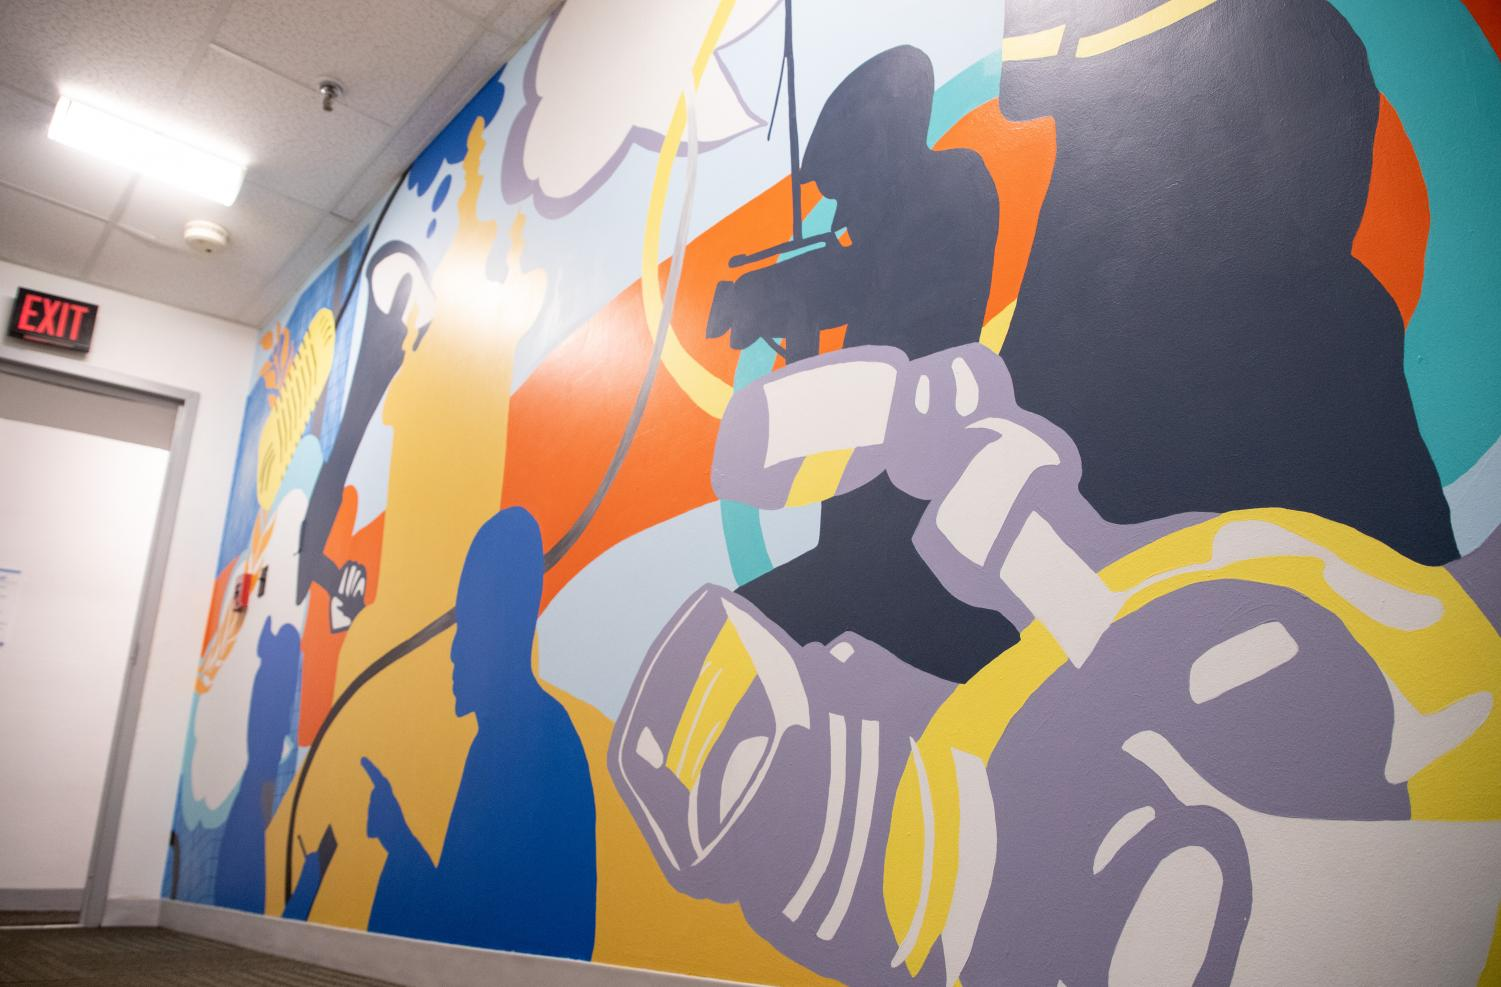 A new mural is in progress on the first floor of Holmes Hall, which houses the School of Journalism.